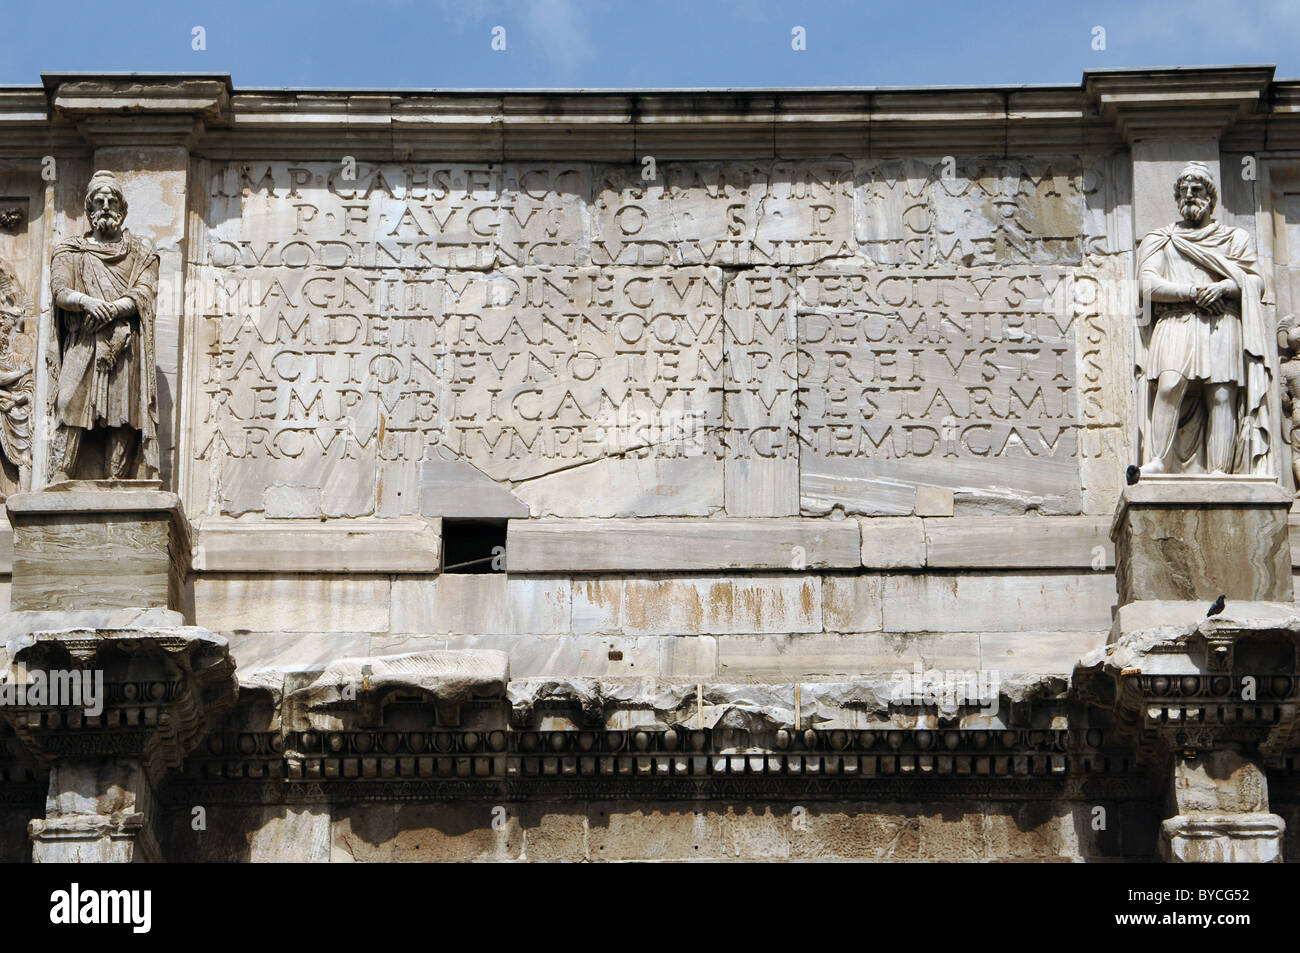 Roman Art. Arch of Constantine. Latin inscription. Rome. Italy. - Stock Image